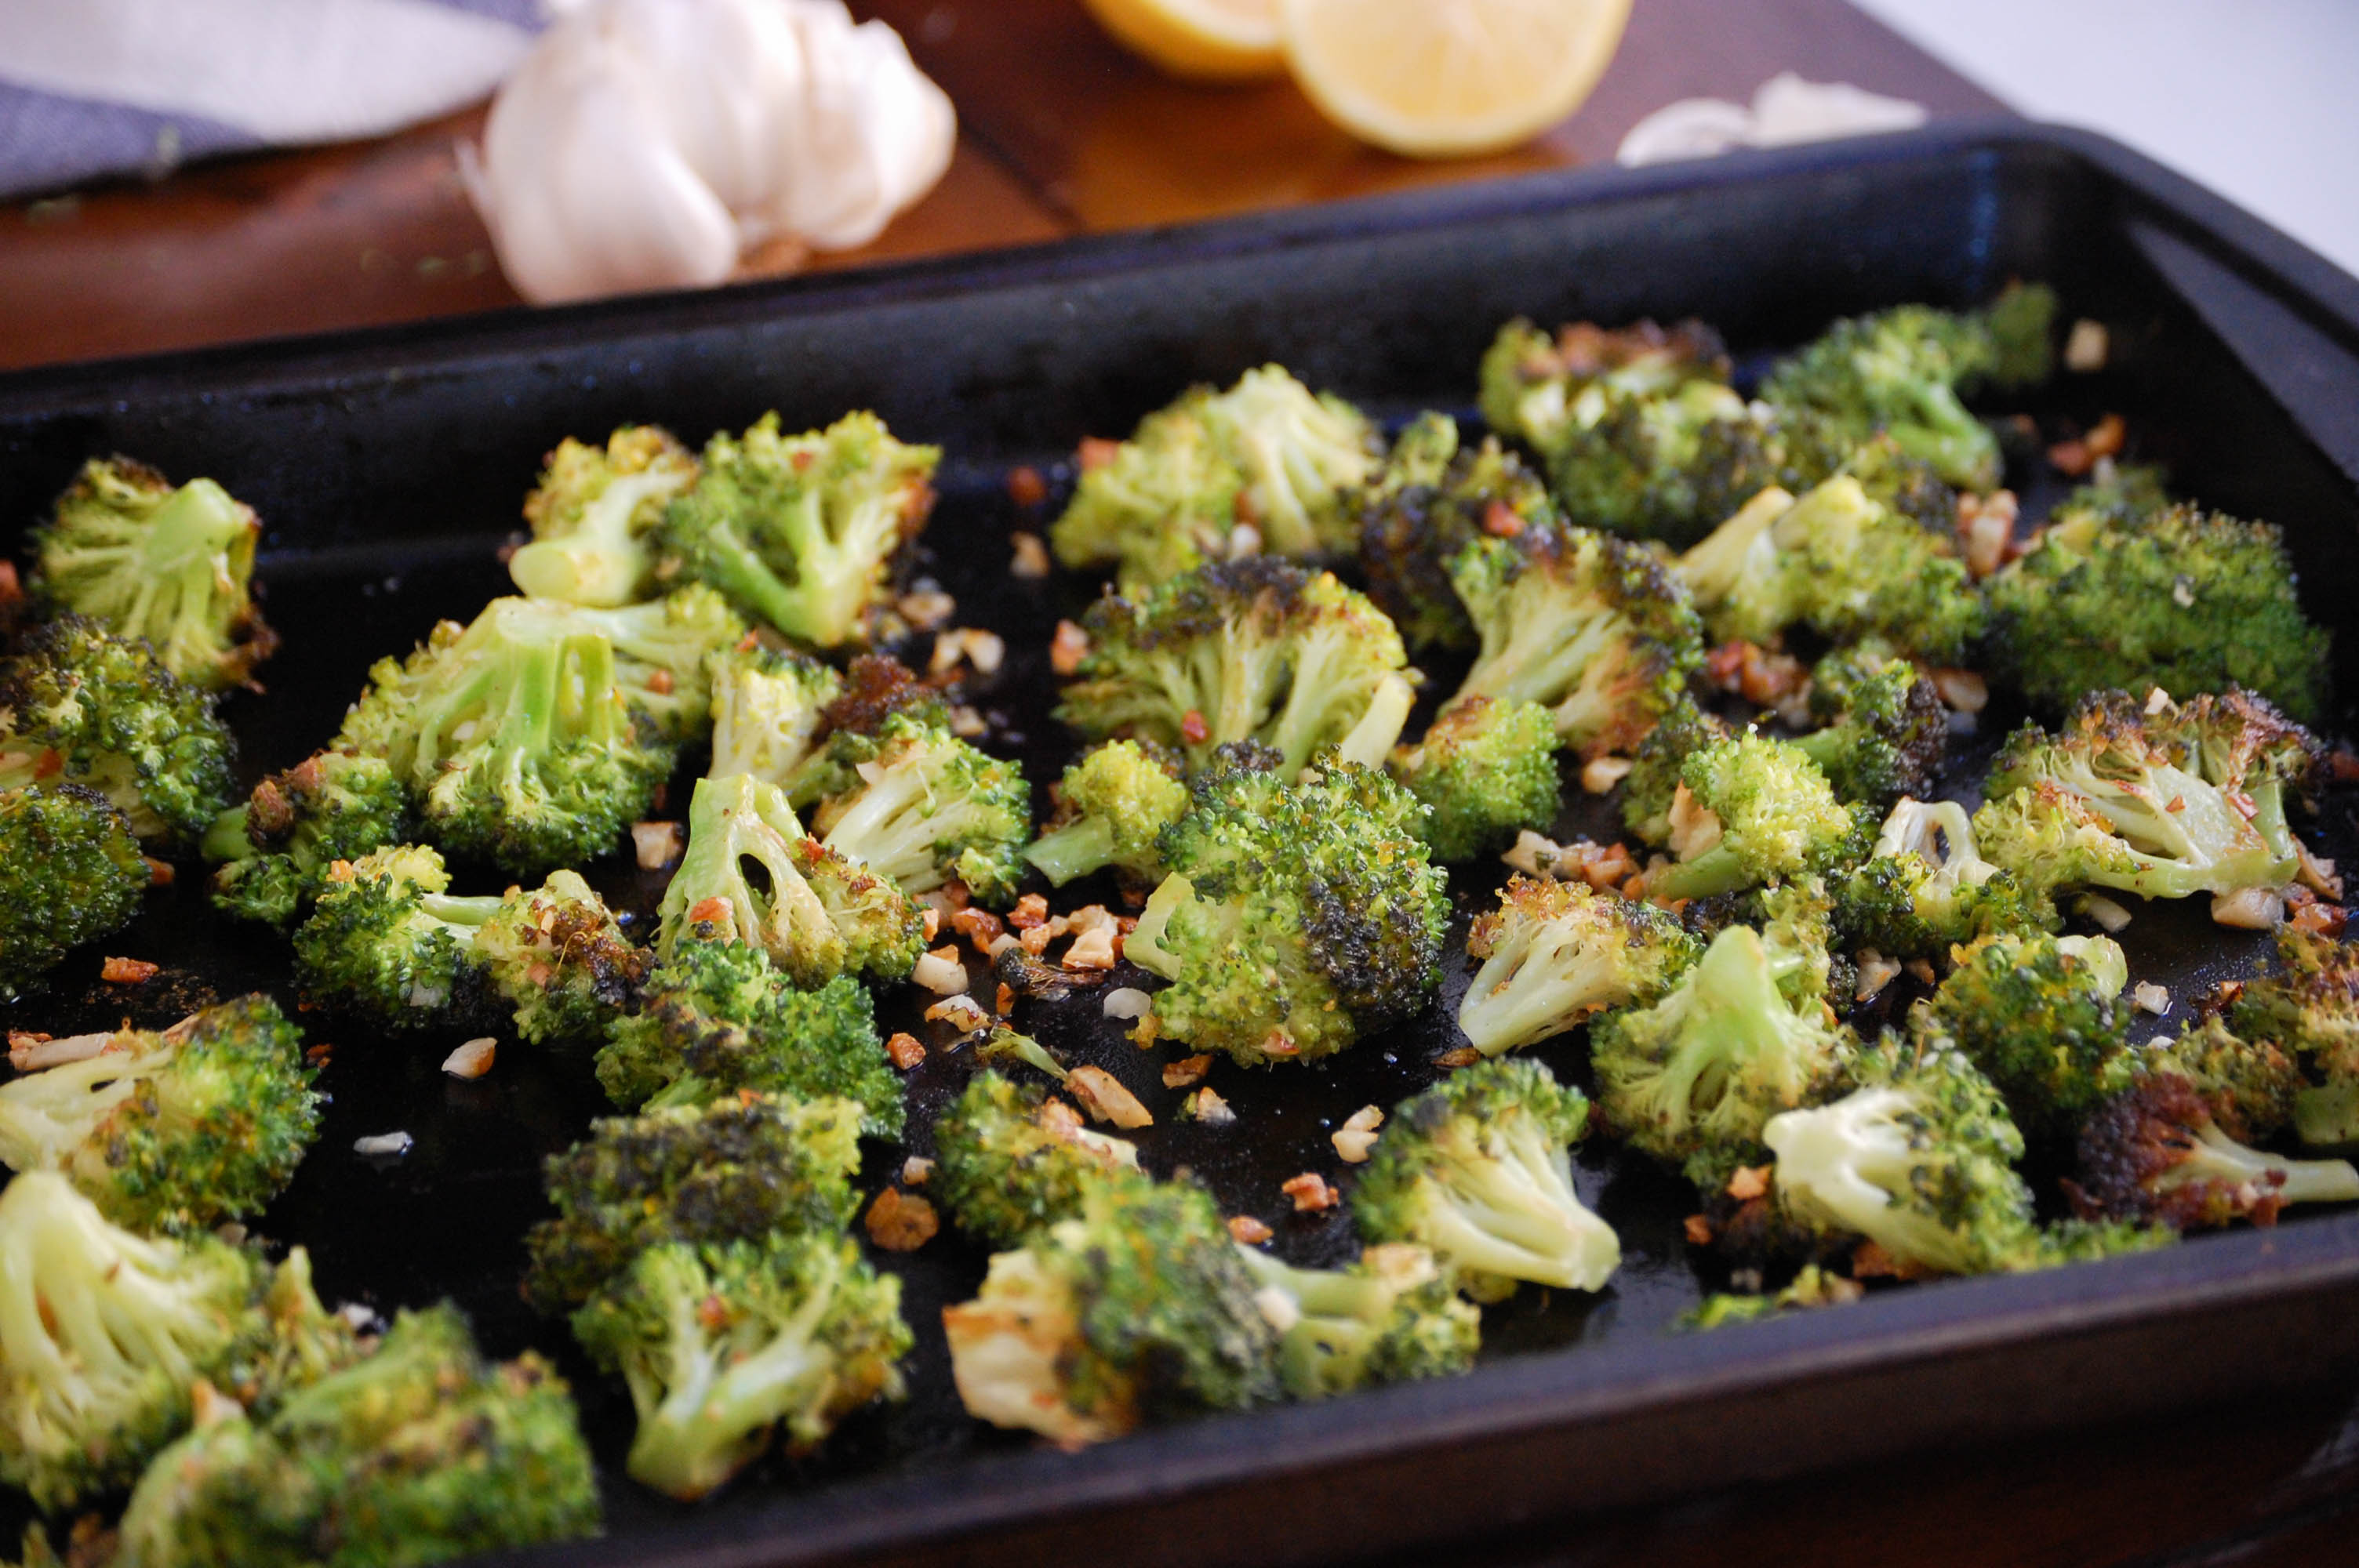 Roasted Broccoli-69